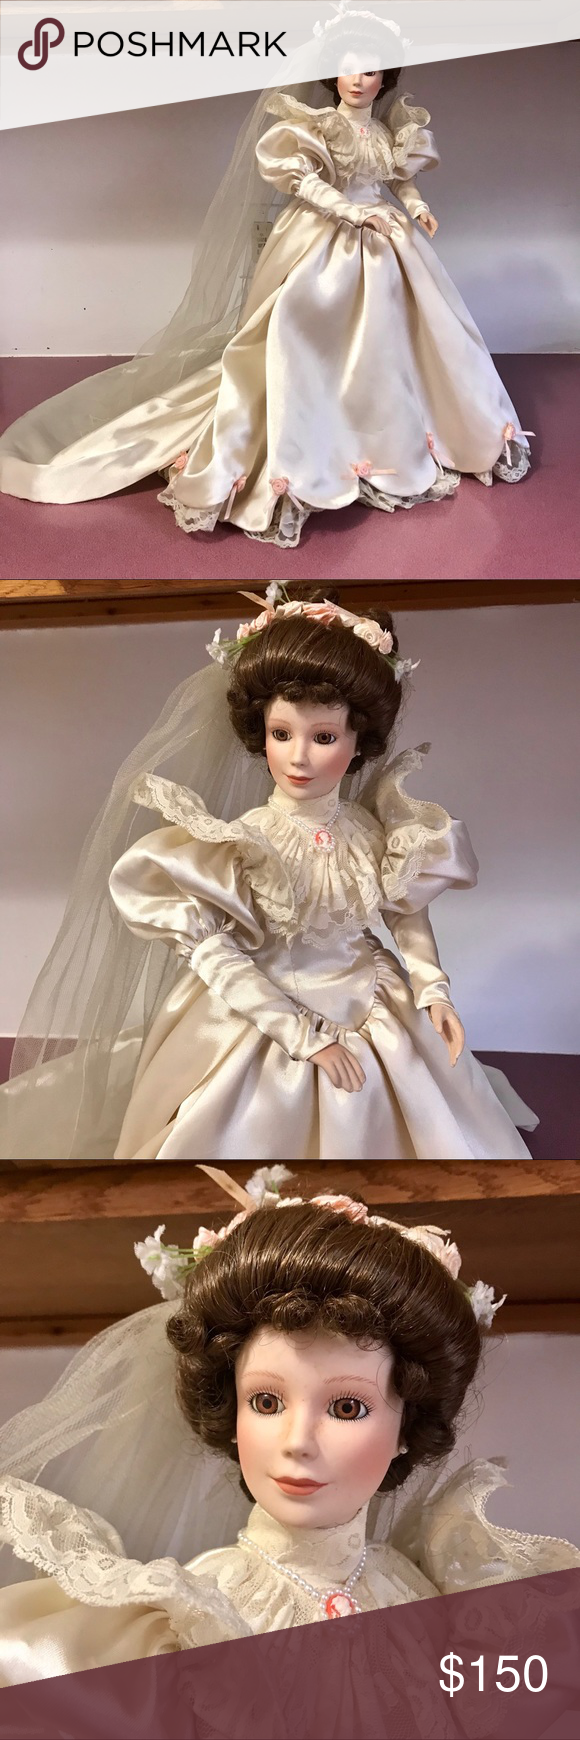 ♥️ Ashton Drake's Elizabeth Wedding Porcelain Doll Vintage Very Elegant 1900 Ashton Drake's Elizabeth Porcelain Doll, This Day Forward Collection, Elizabeth Wedding Dress style 1900's 1st in Series.    This is a beautiful Bride doll designed by Phil Tumminio for Ashton Drake.   This handcrafted porcelain doll,  Ashton Drake Bride Doll is a Set of 4 Ashton Drake Bride Dolls From This Day Forward collection.   Approx 19 Porcelain Doll Is In Preloved Condition. The Doll Stand Is Included. Ther #dollvictoriandressstyles